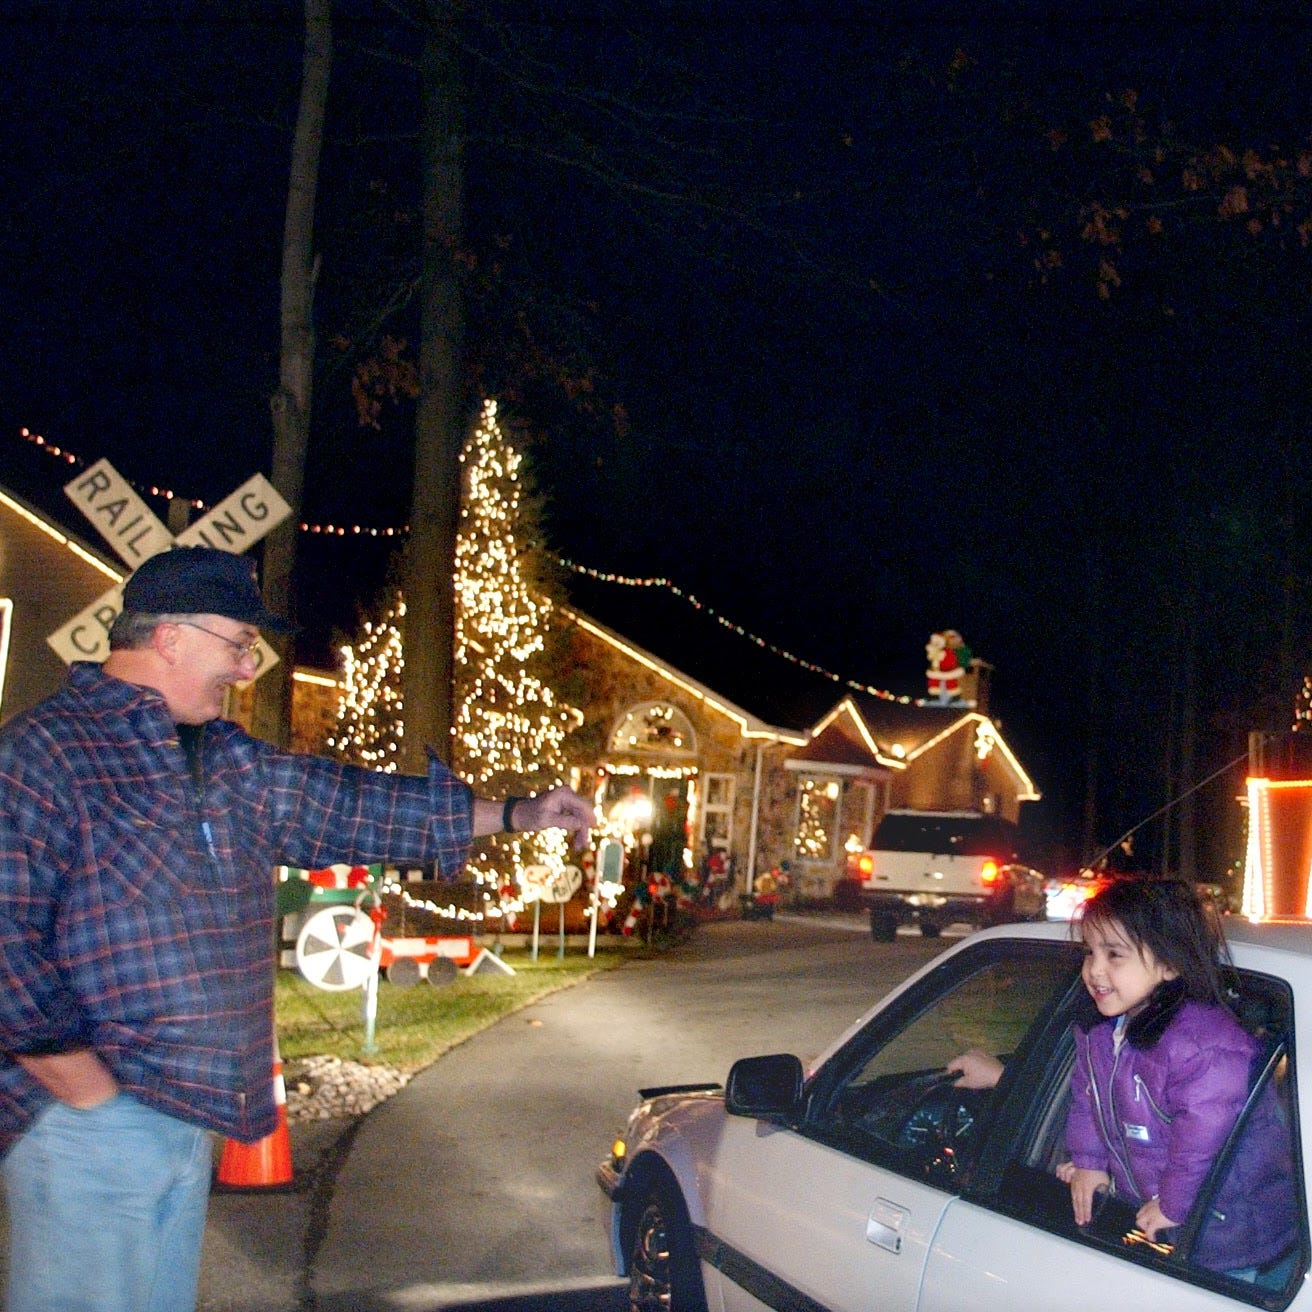 Retired police officer's Christmas lights display - a York County tradition - is ending